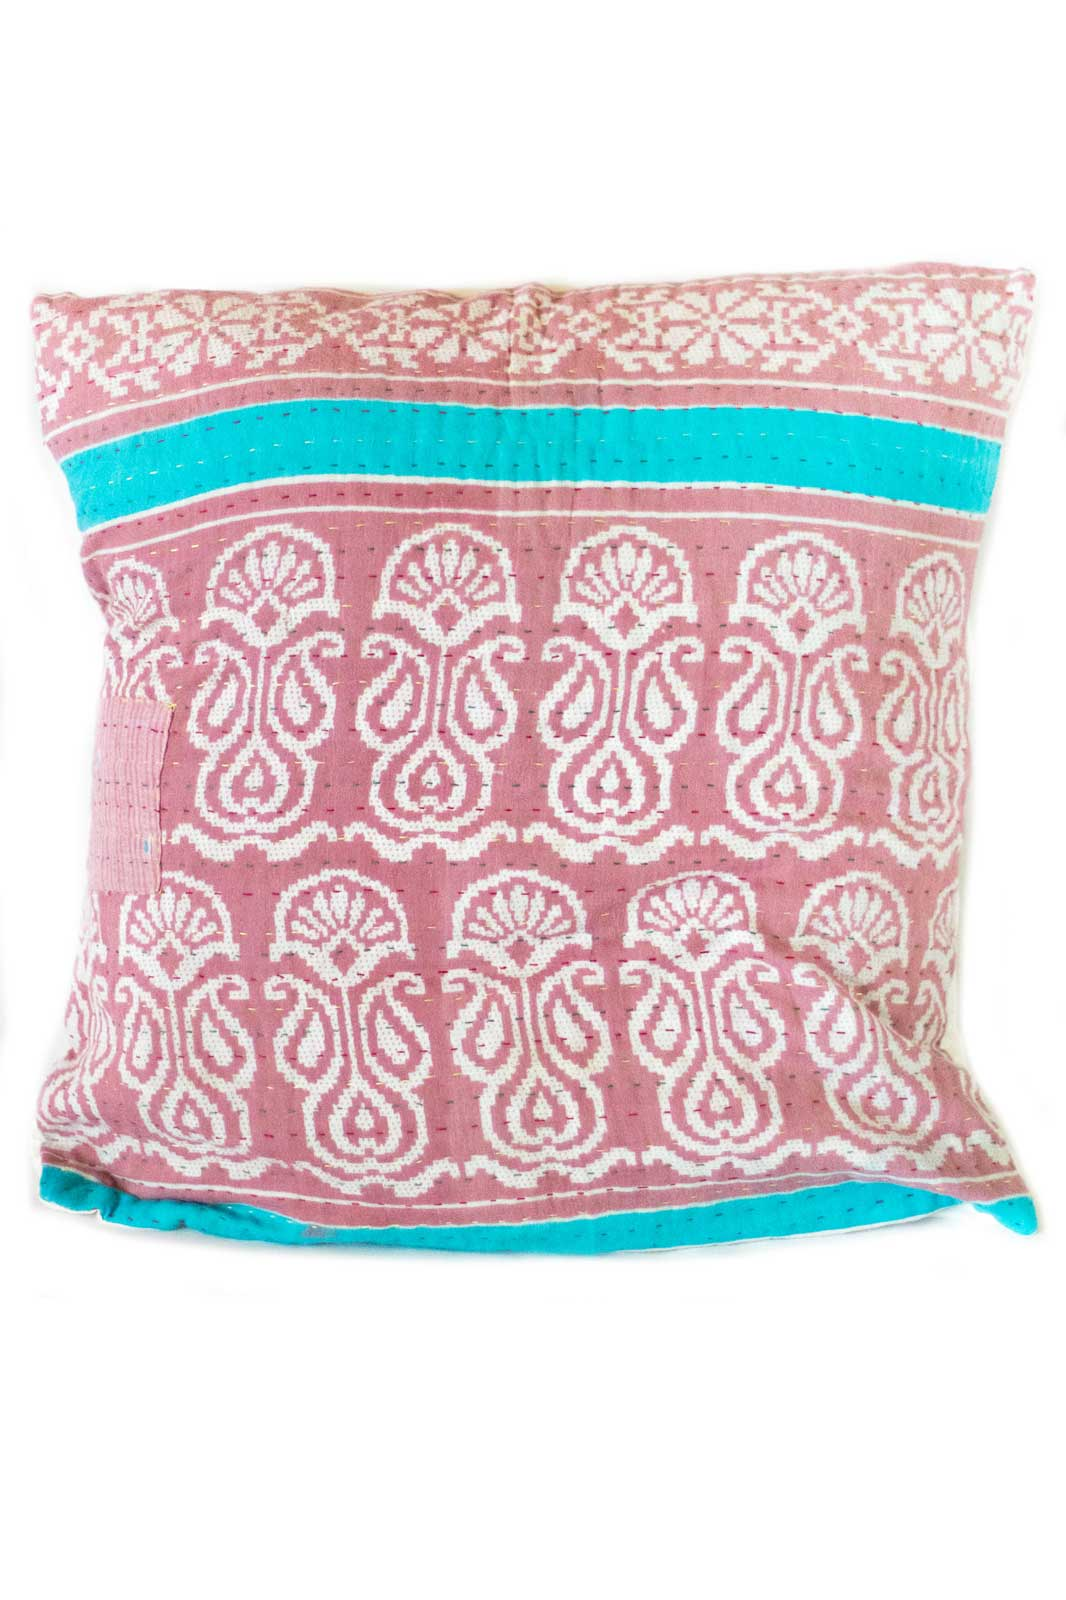 Beauty no. 7 Kantha Pillow Cover